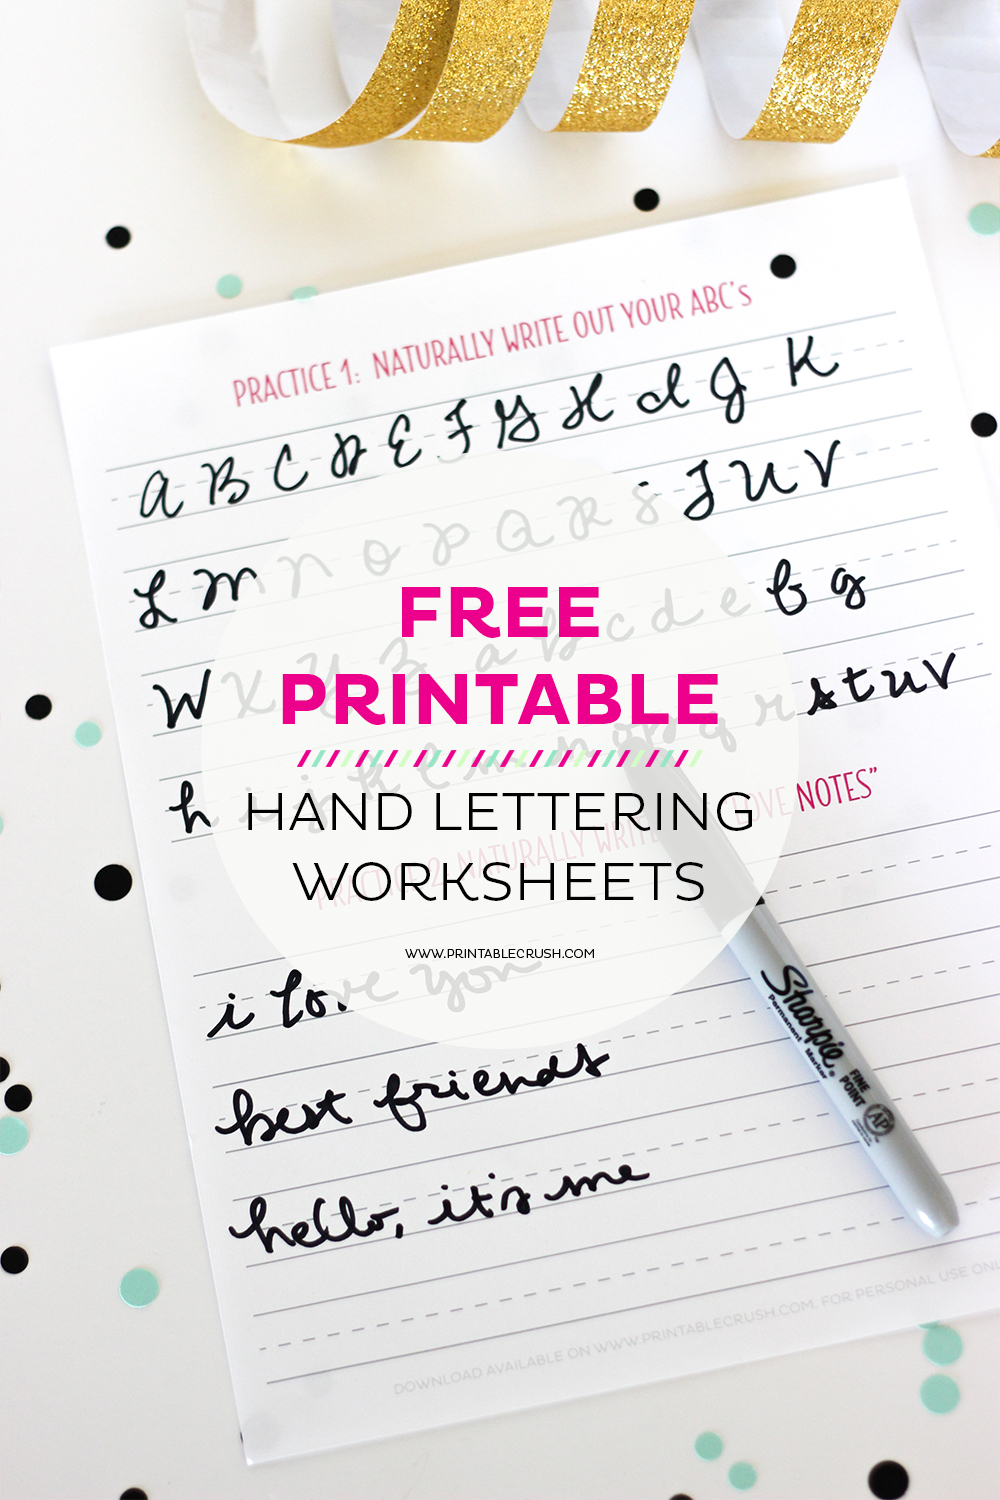 Free Worksheet Free Printable Main Idea Worksheets free printable main idea worksheets worksheet workbook site for our crush workshop we handed out these hand lettering worksheets